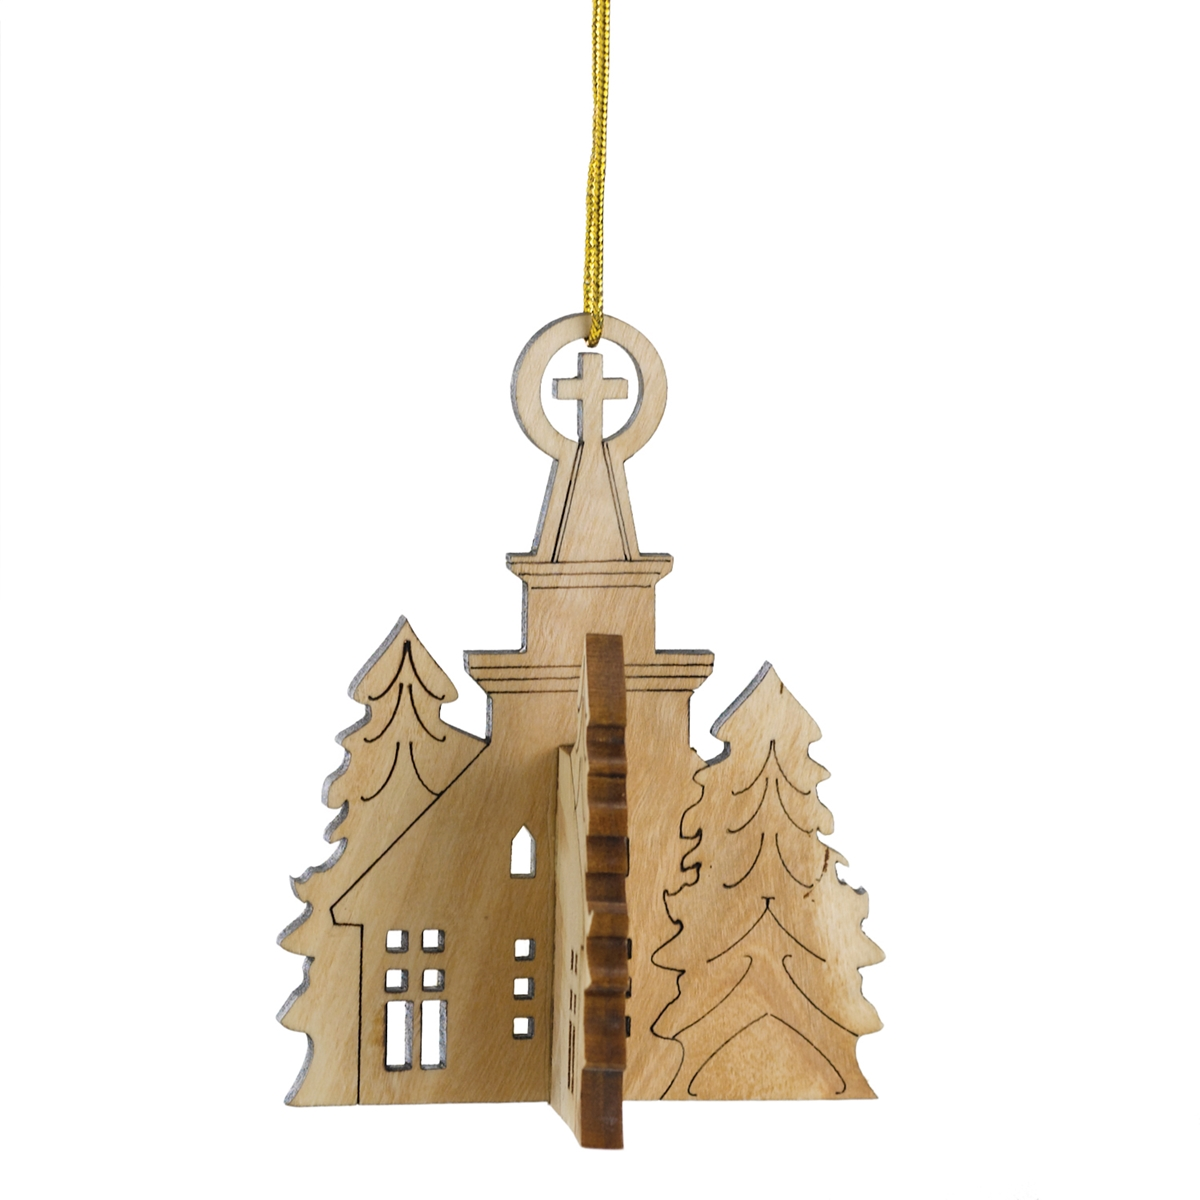 3-D Church Ornament